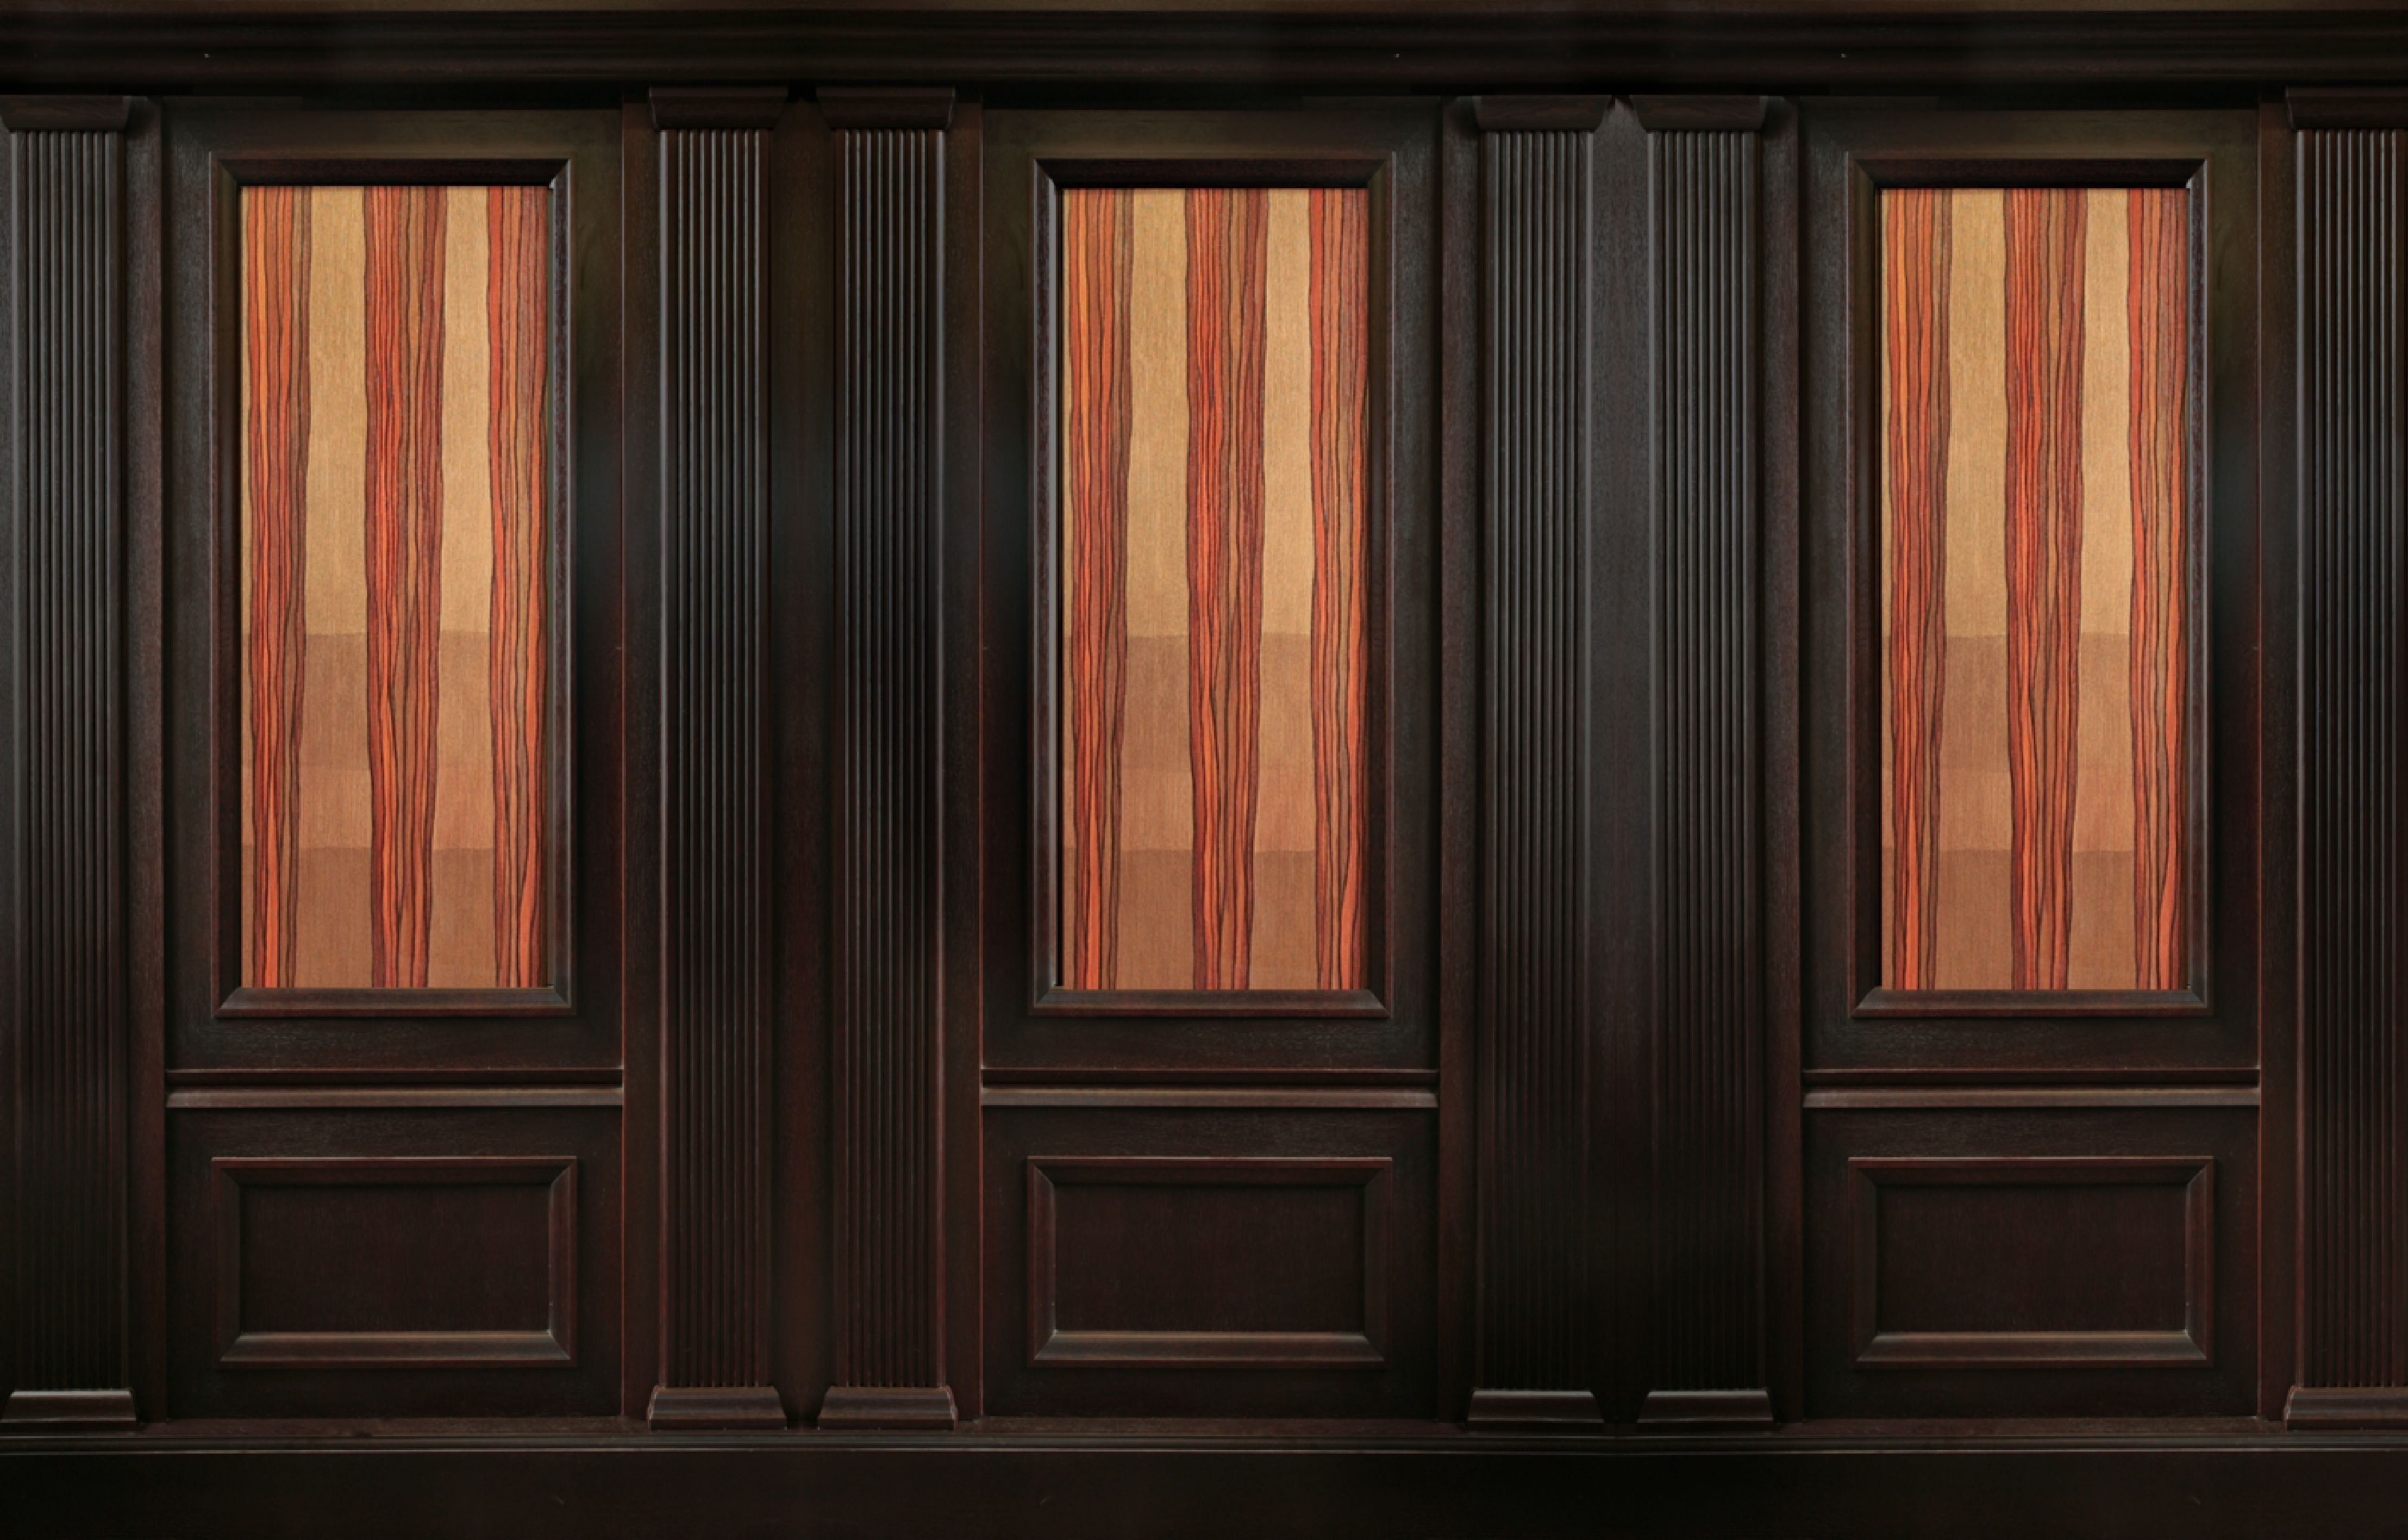 Wood Paneling For Walls Designs Rosby Branded Wood Wall Panels All Rights Reserved By